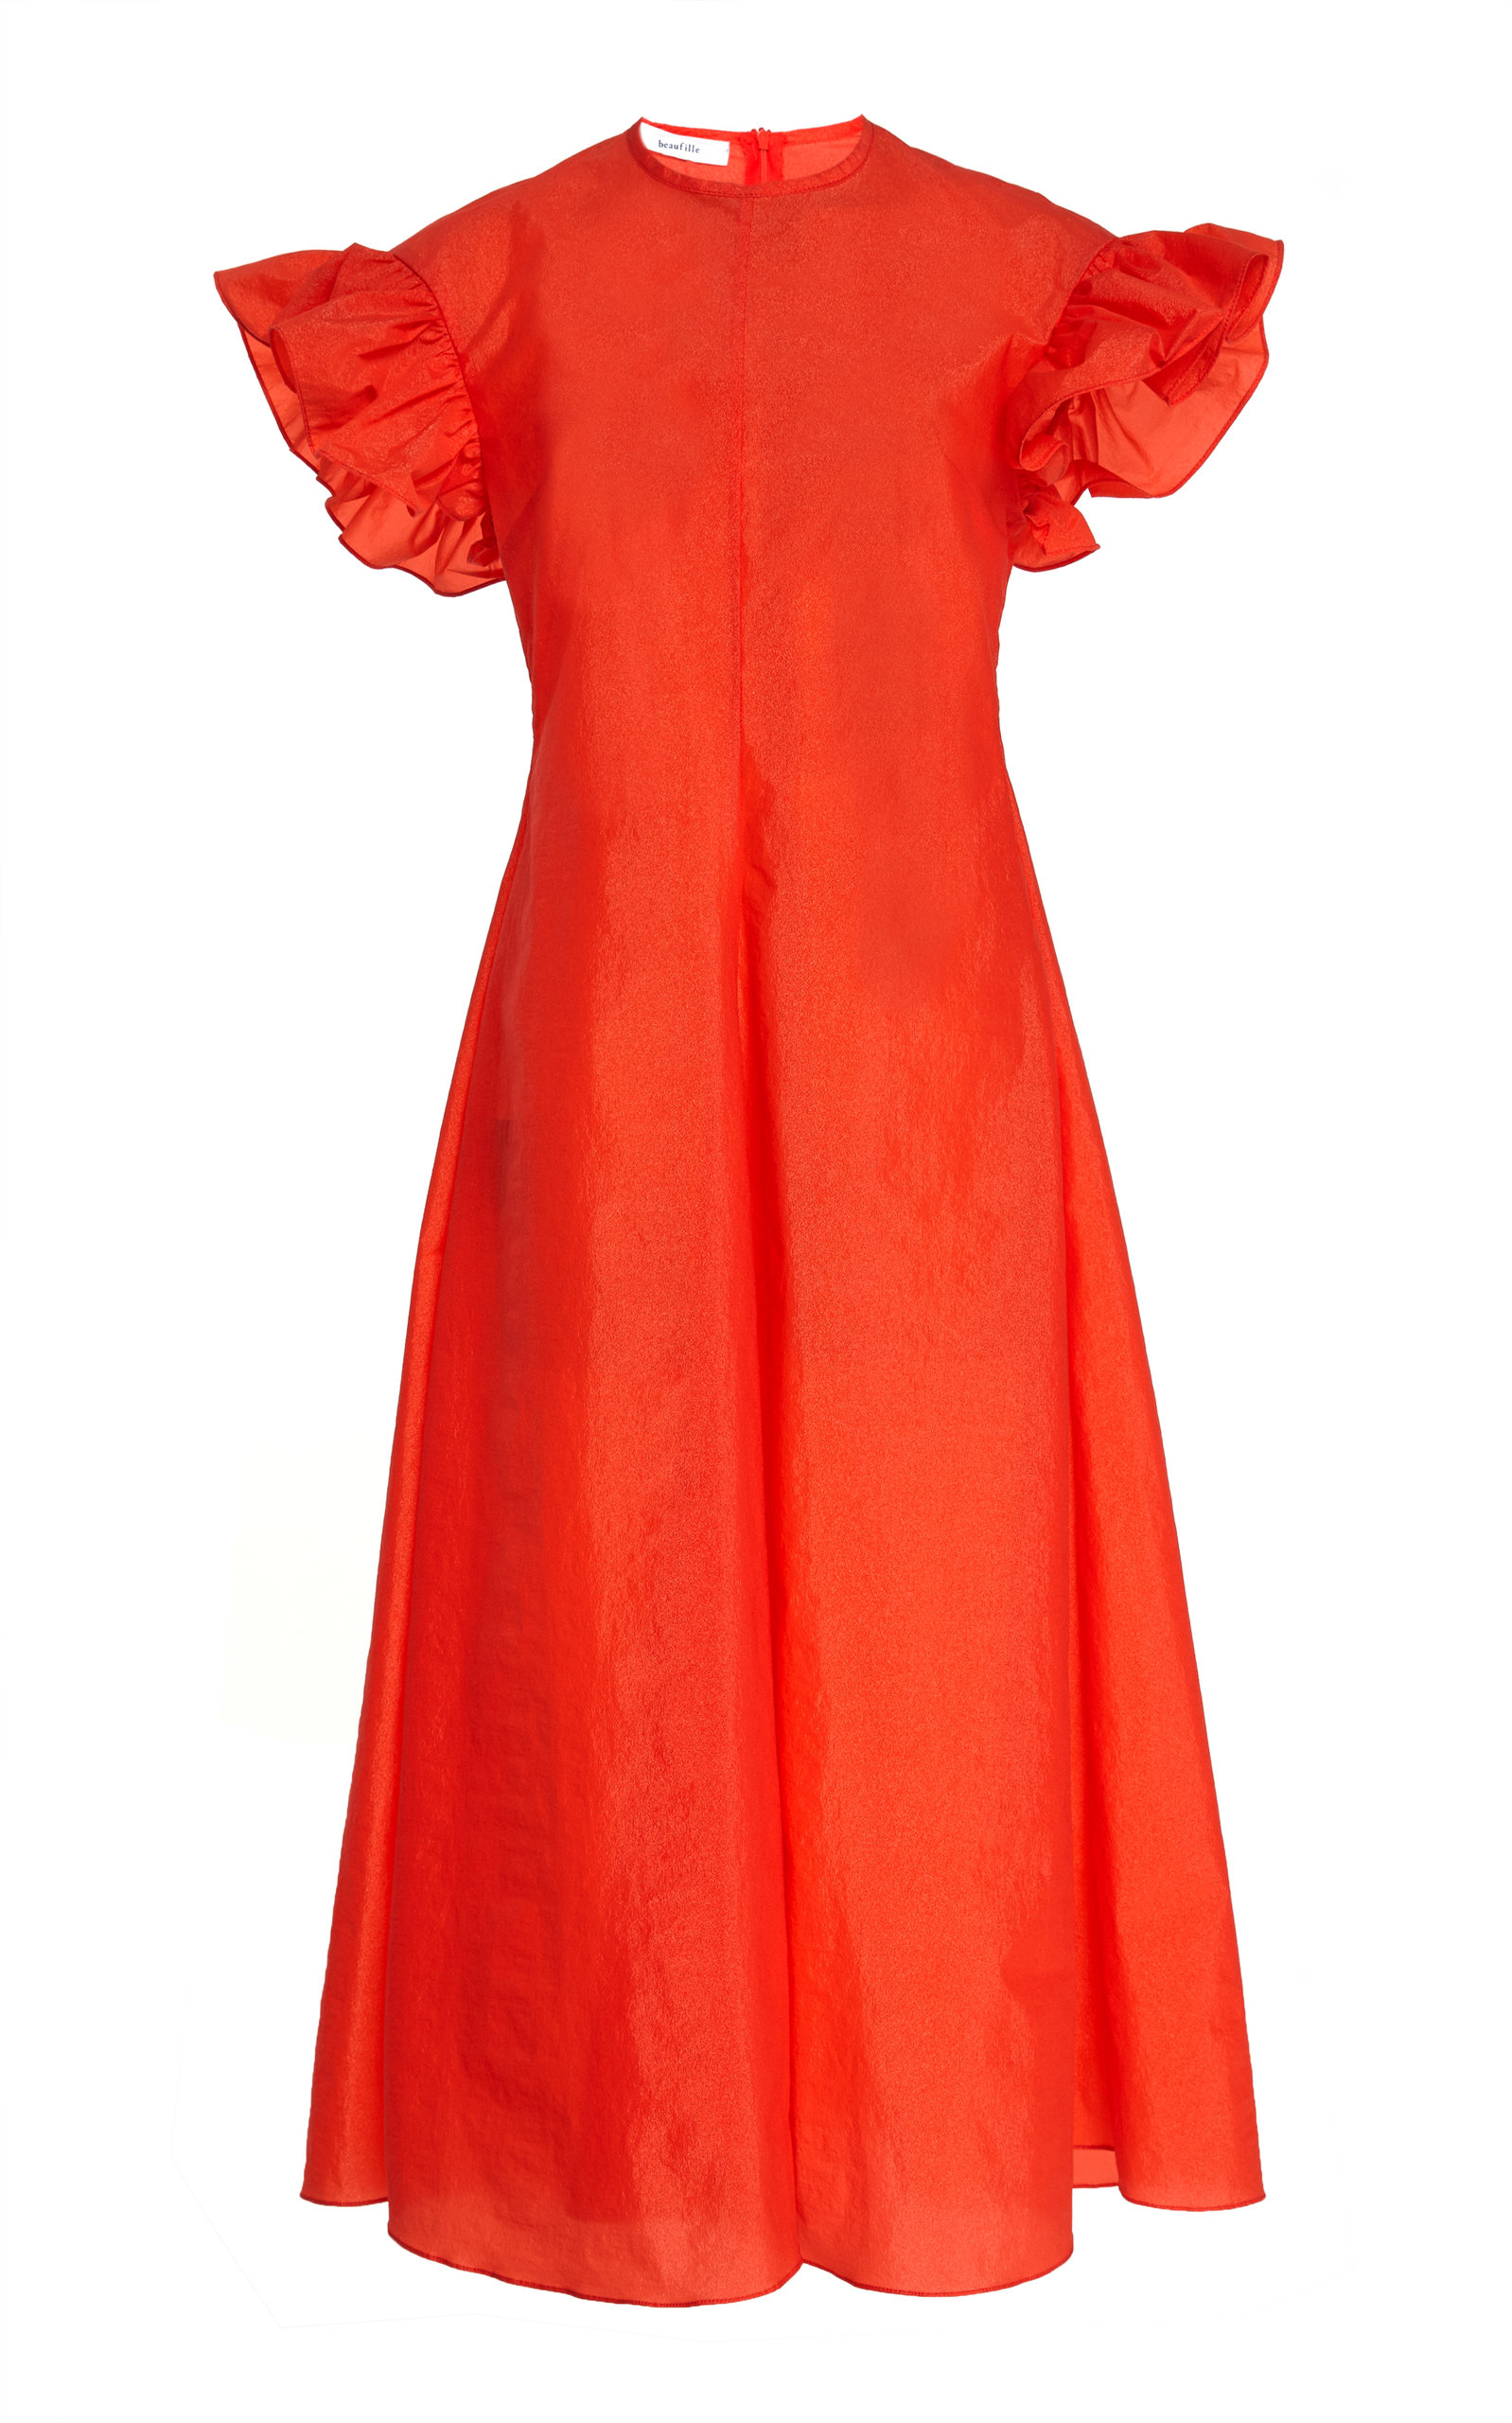 Buy Beaufille Dorado Ruffle-Sleeve Crepe Midi Dress online, shop Beaufille at the best price